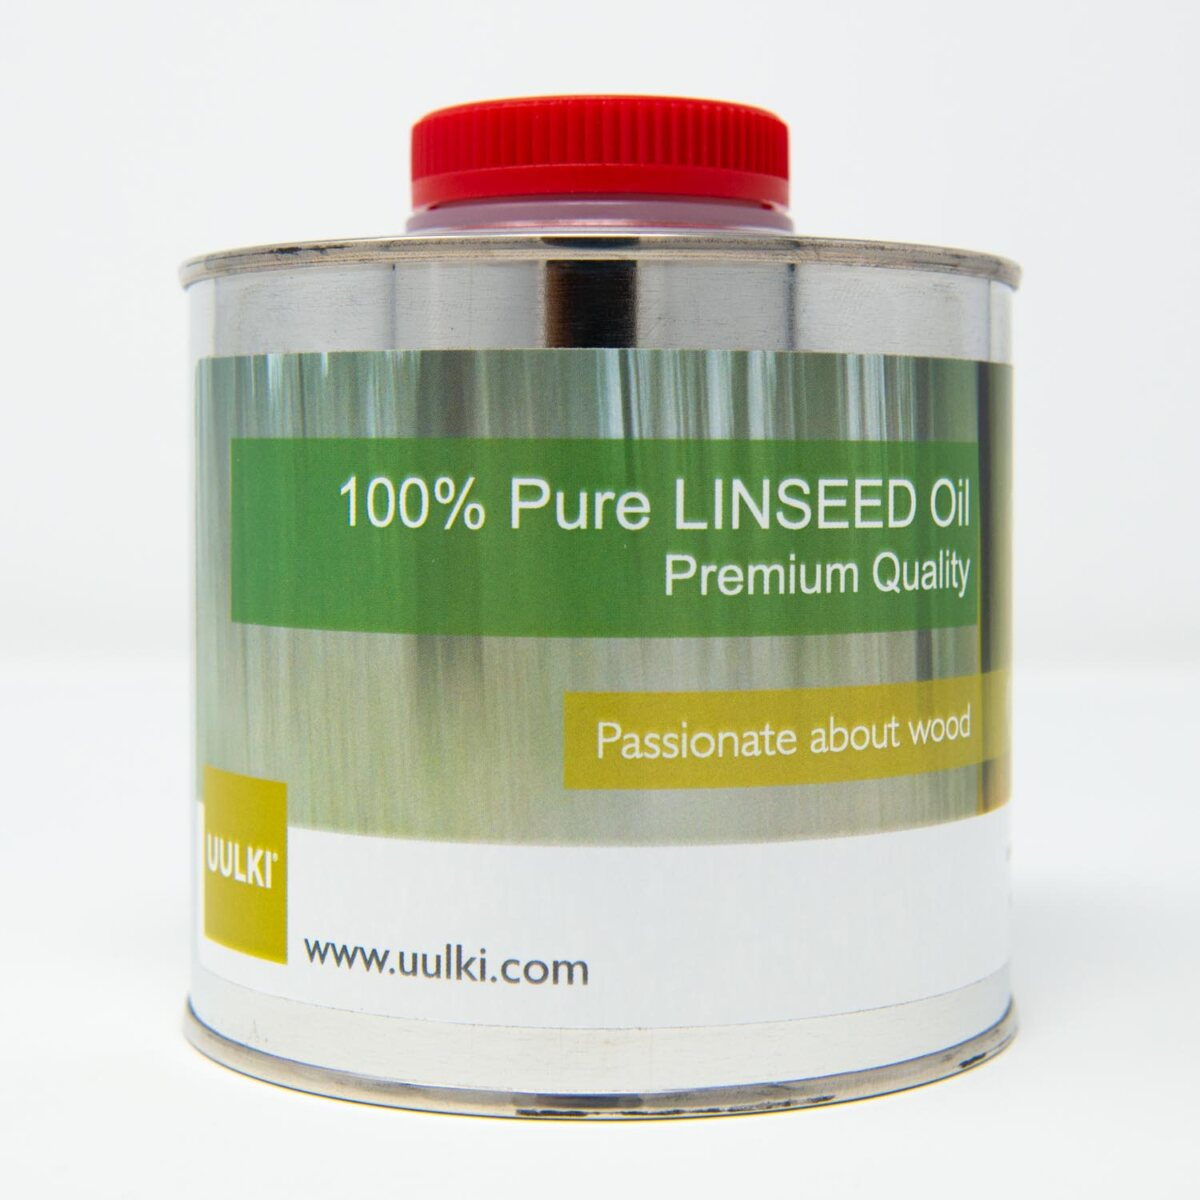 Uulki linseed oil wood protection